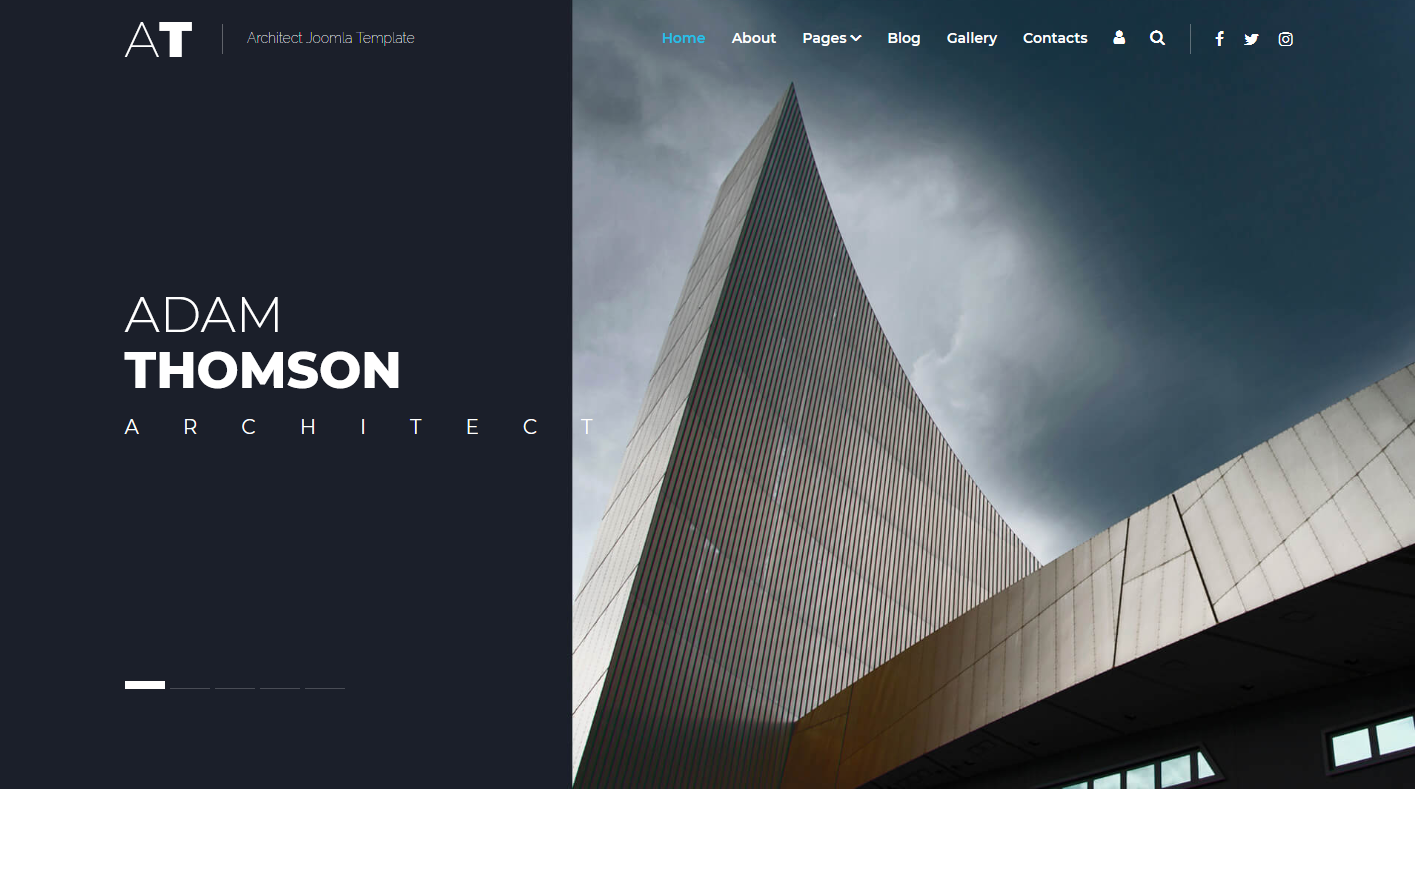 https://www.templatemonster.com/joomla-templates/at-solid-architecture-agency-joomla-template-70002.html?aff=rahulxarma